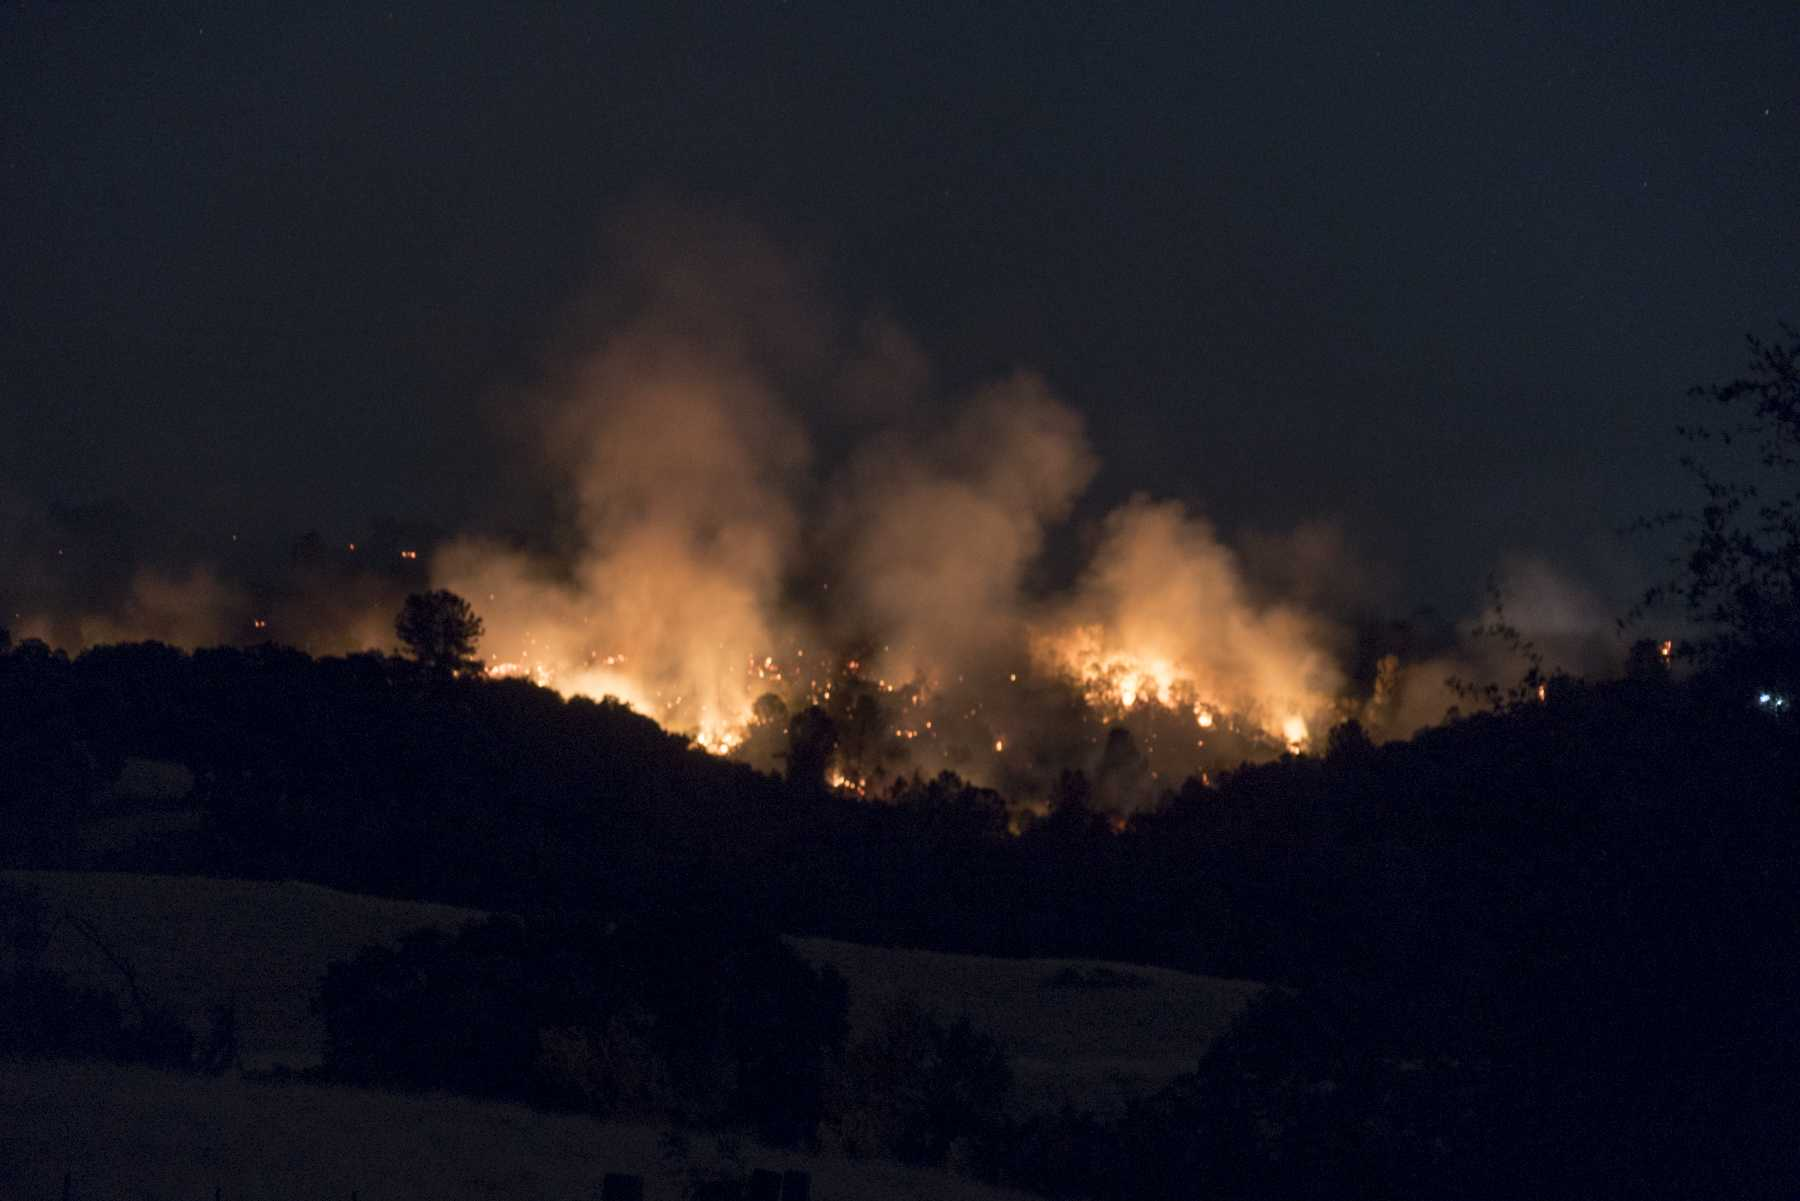 Evacuations issued due to wildfire in Tuolumne County